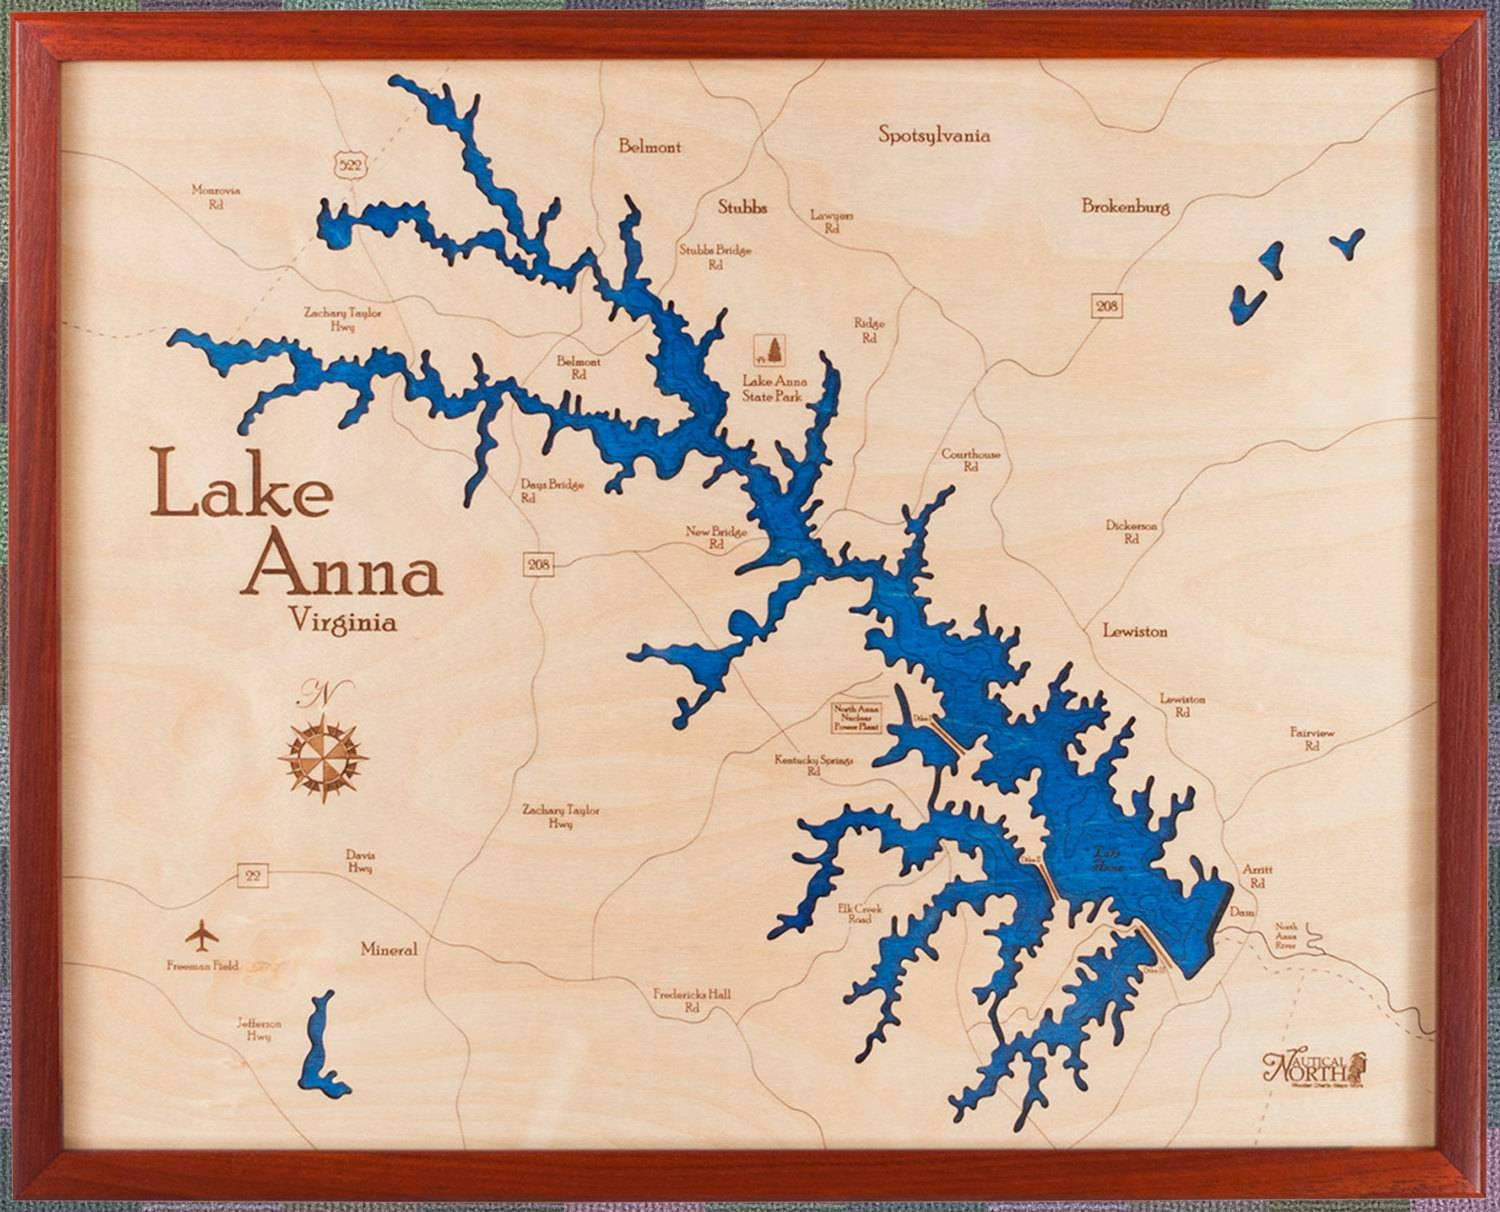 Lake Anna Virginia 16X20 3D Wall Chart Within Most Recent Lake Map Wall Art (View 10 of 20)